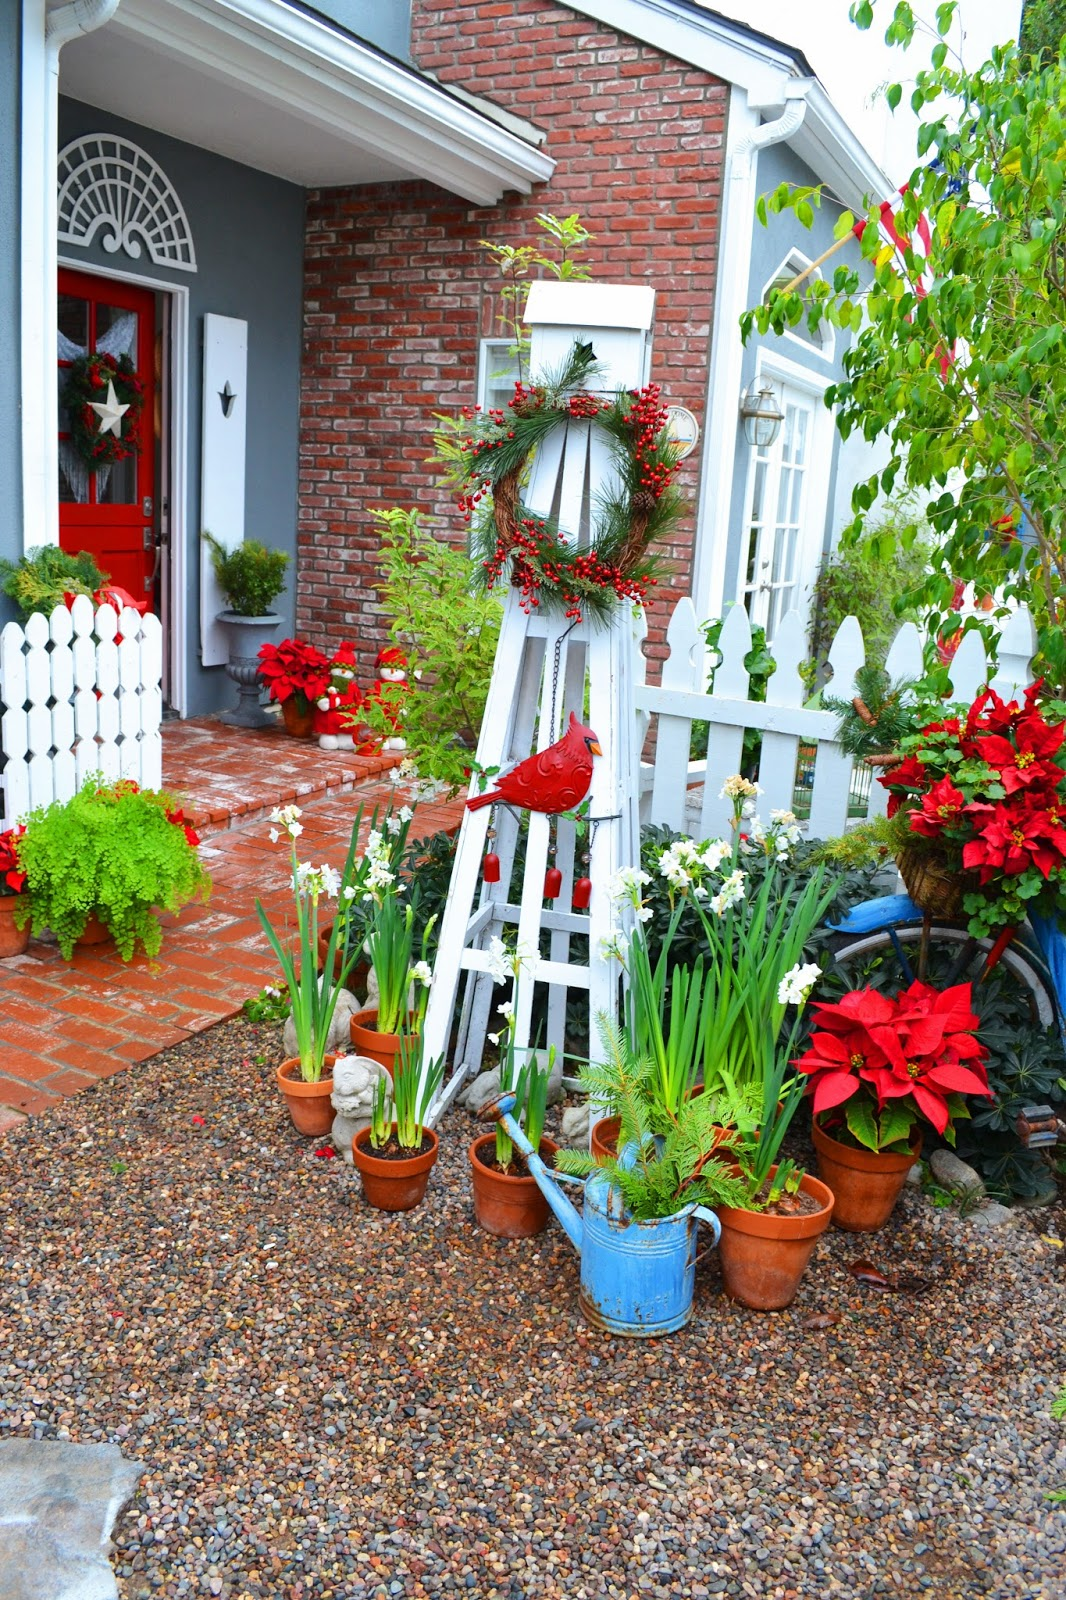 Garden Home And Party Spring Fever: My Painted Garden: Christmas Cottage Home/Garden Tour